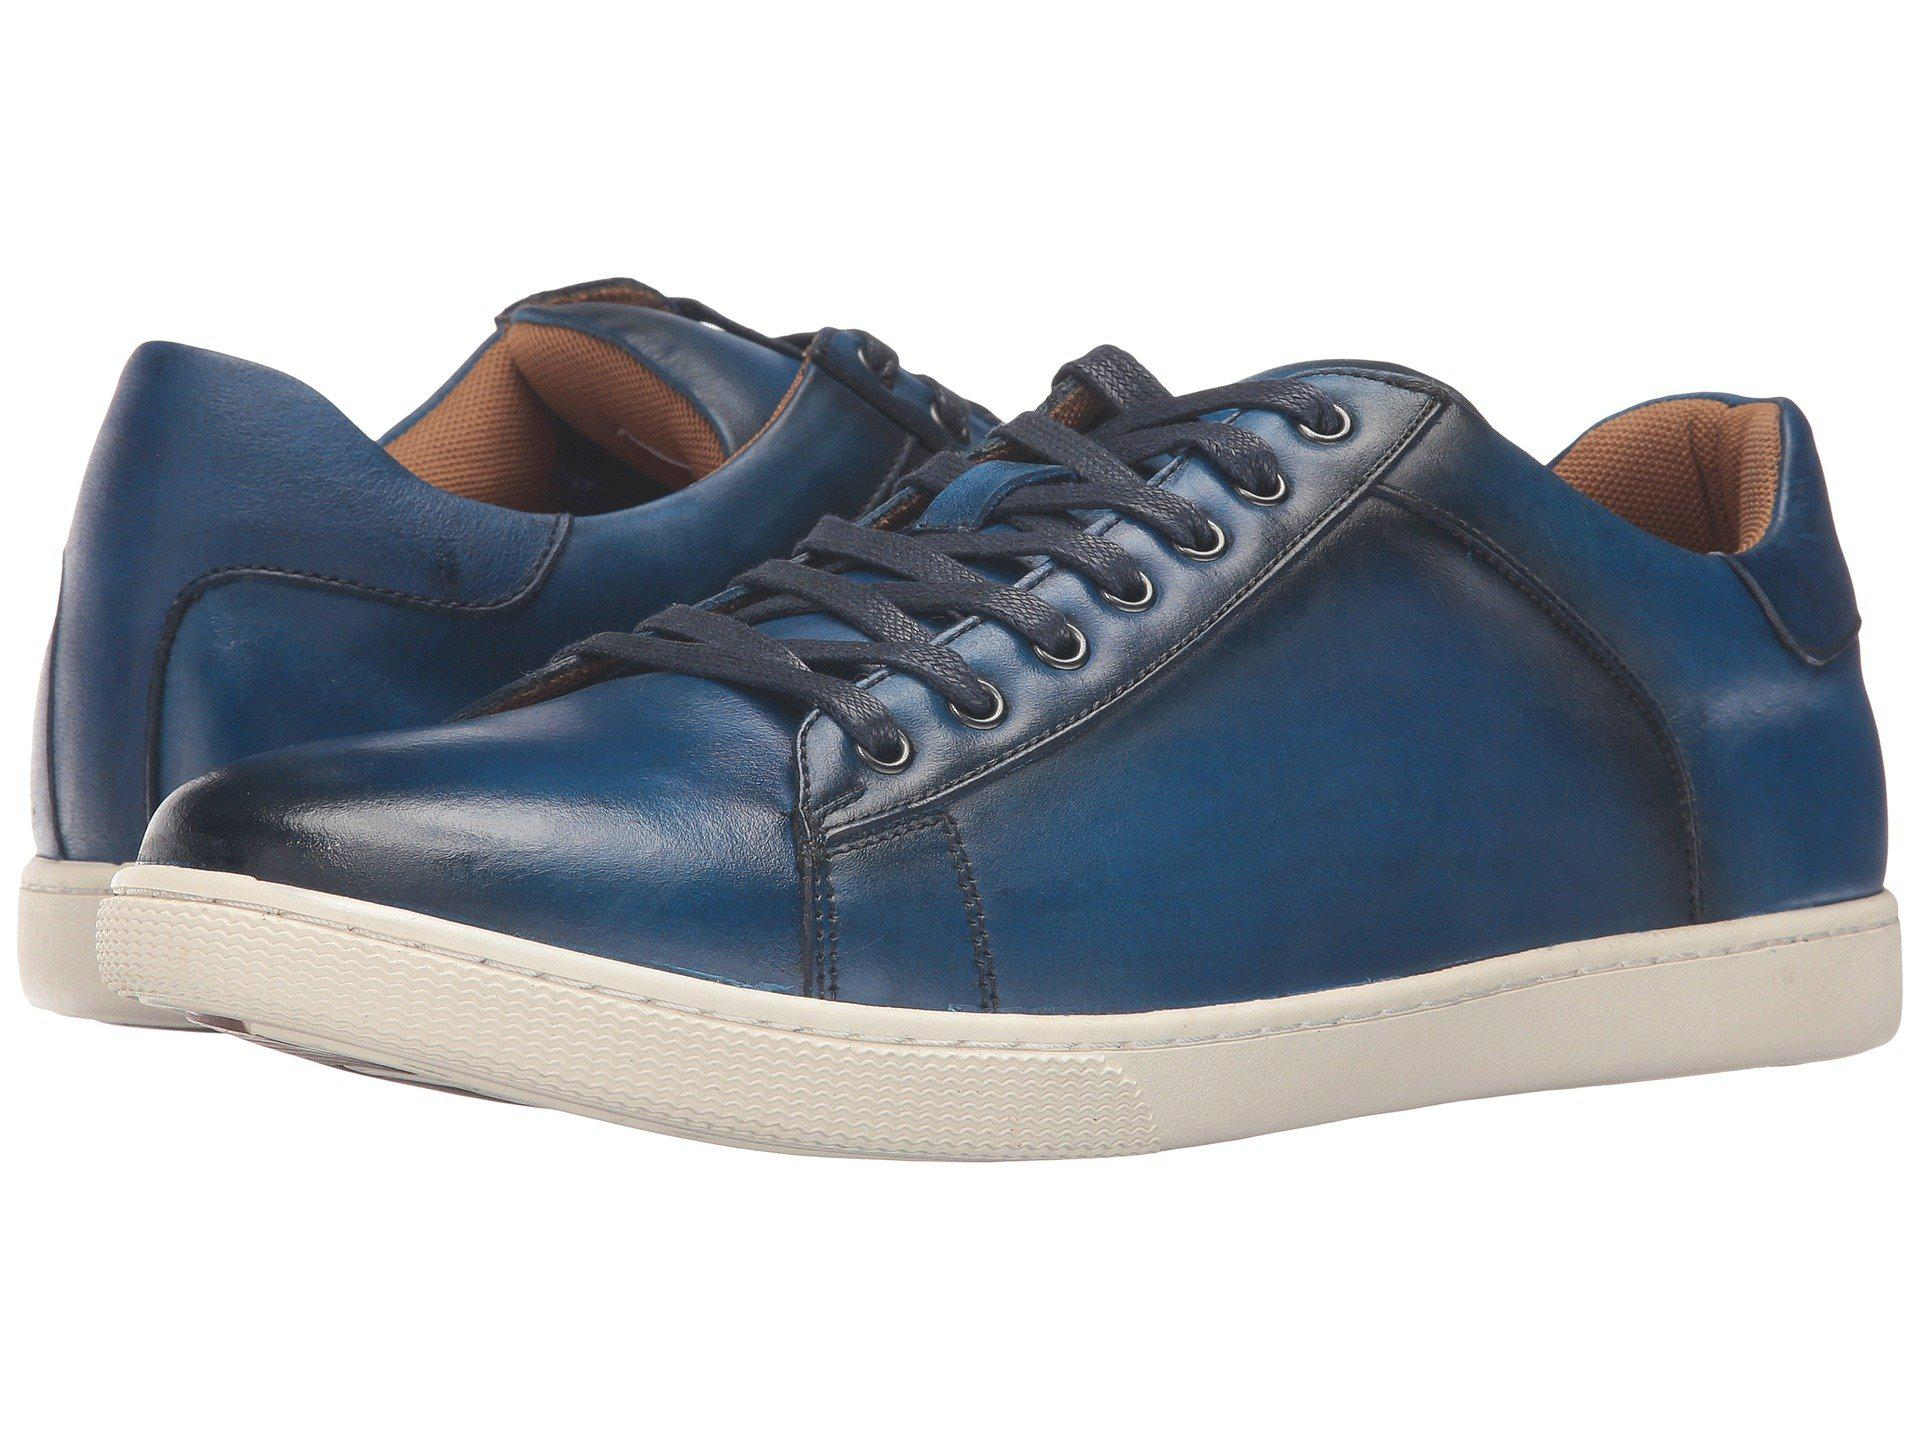 47c17fd3685 Lyst - Steve Madden Ringwald in Blue for Men